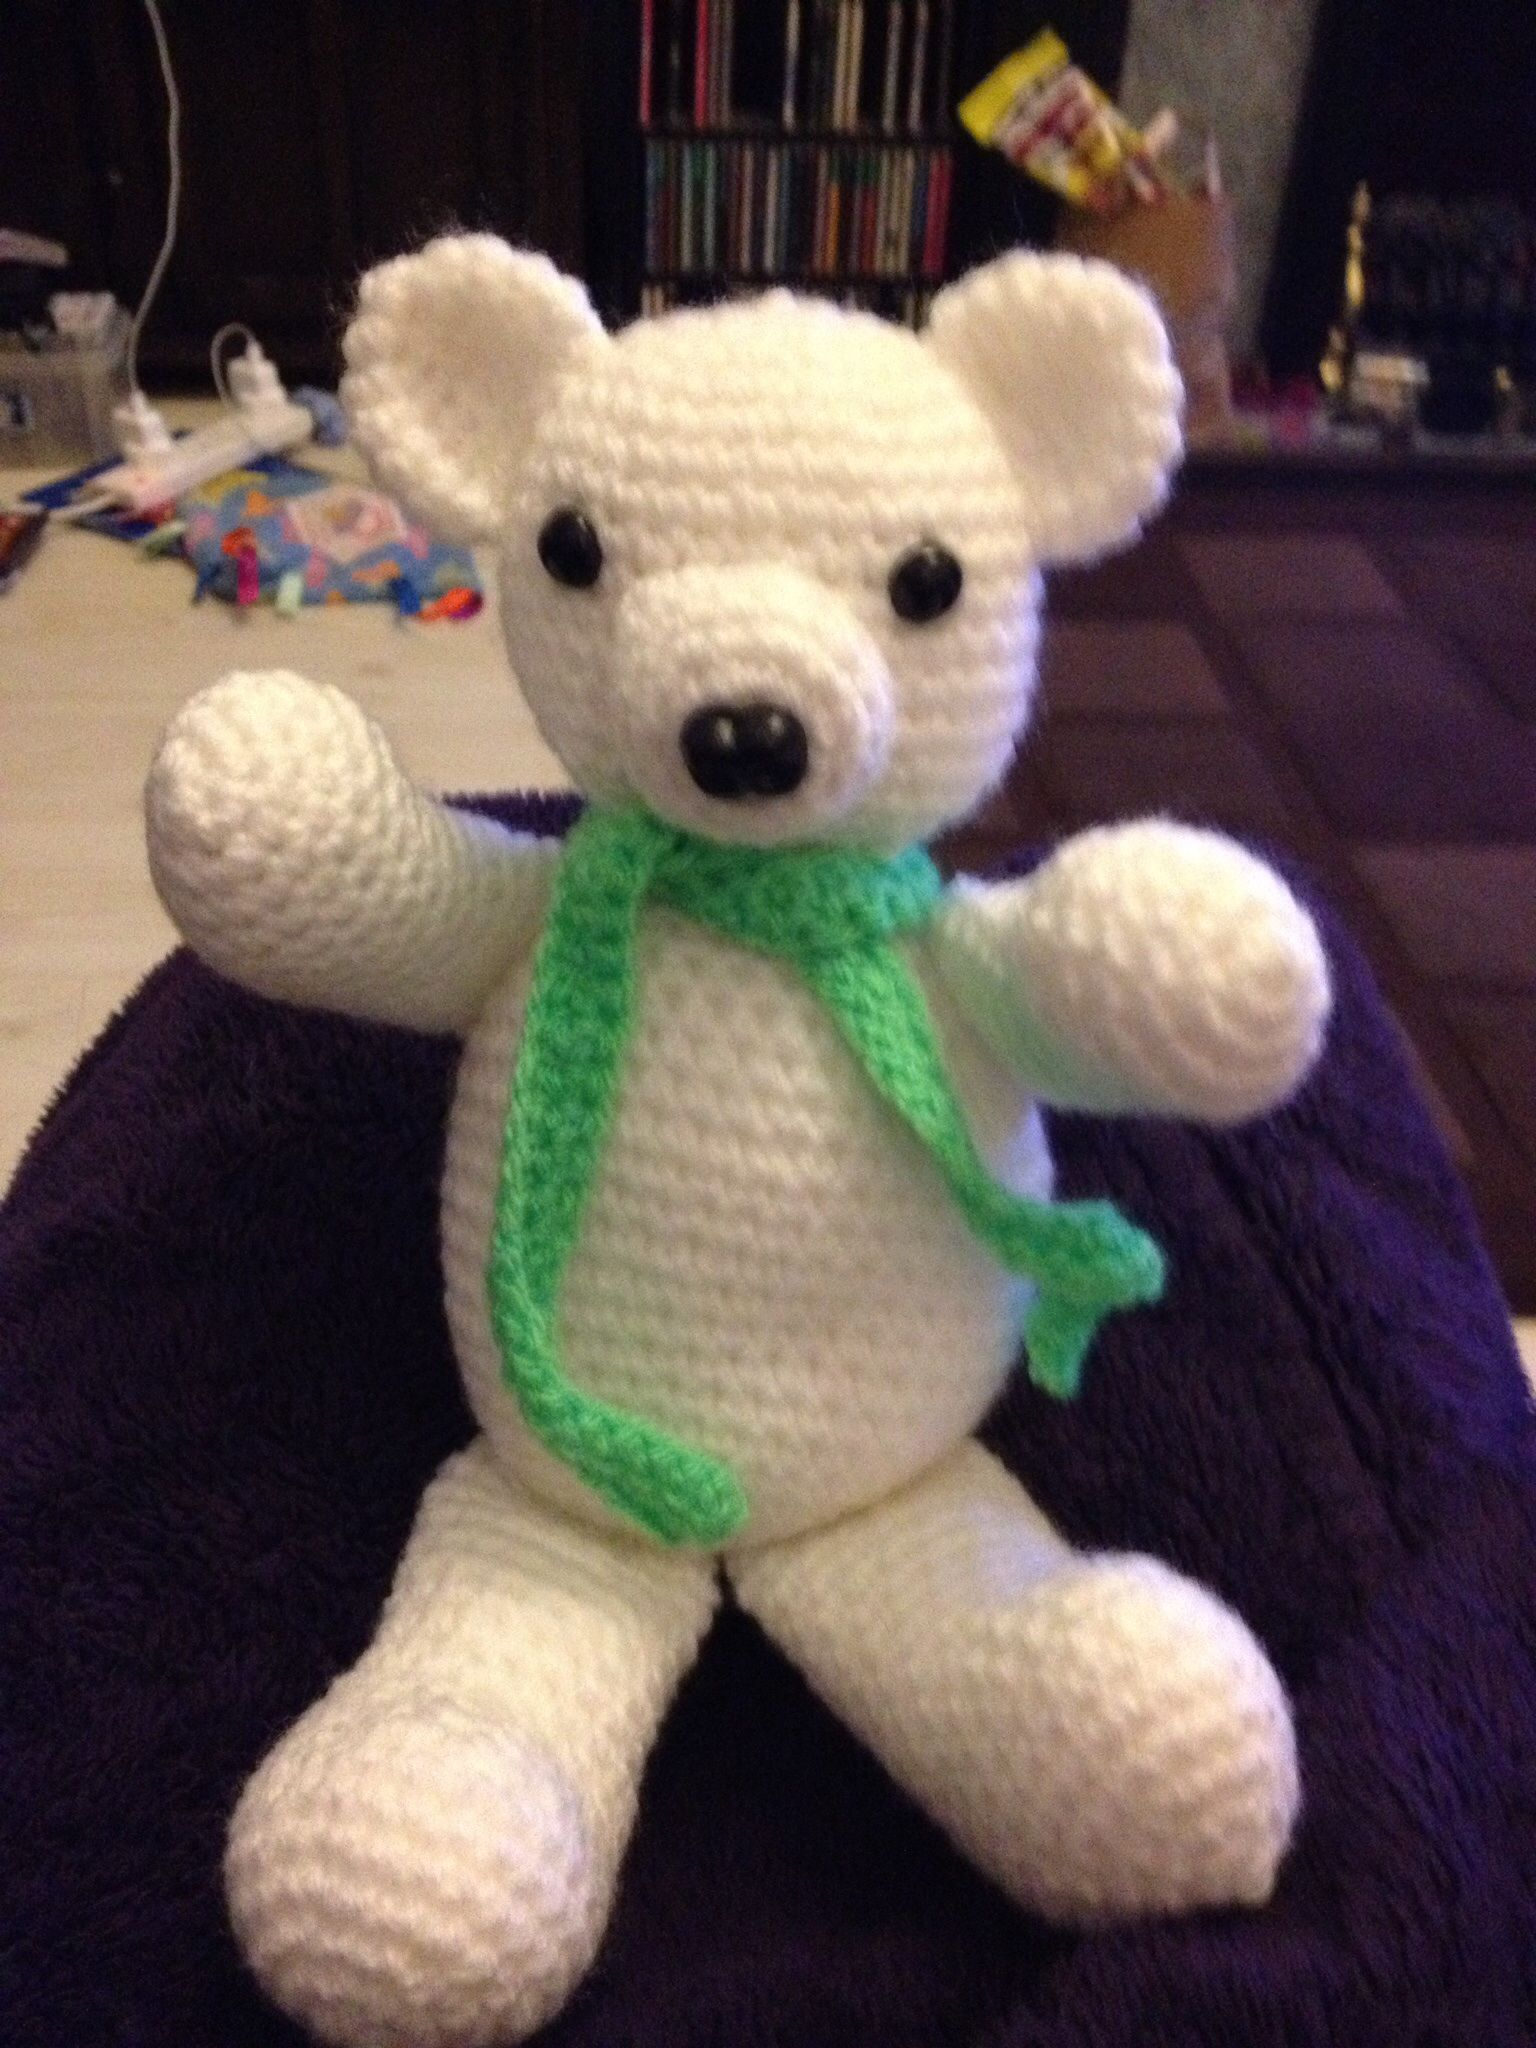 This poor little bear has been missing an arm for weeks, but I finally found it